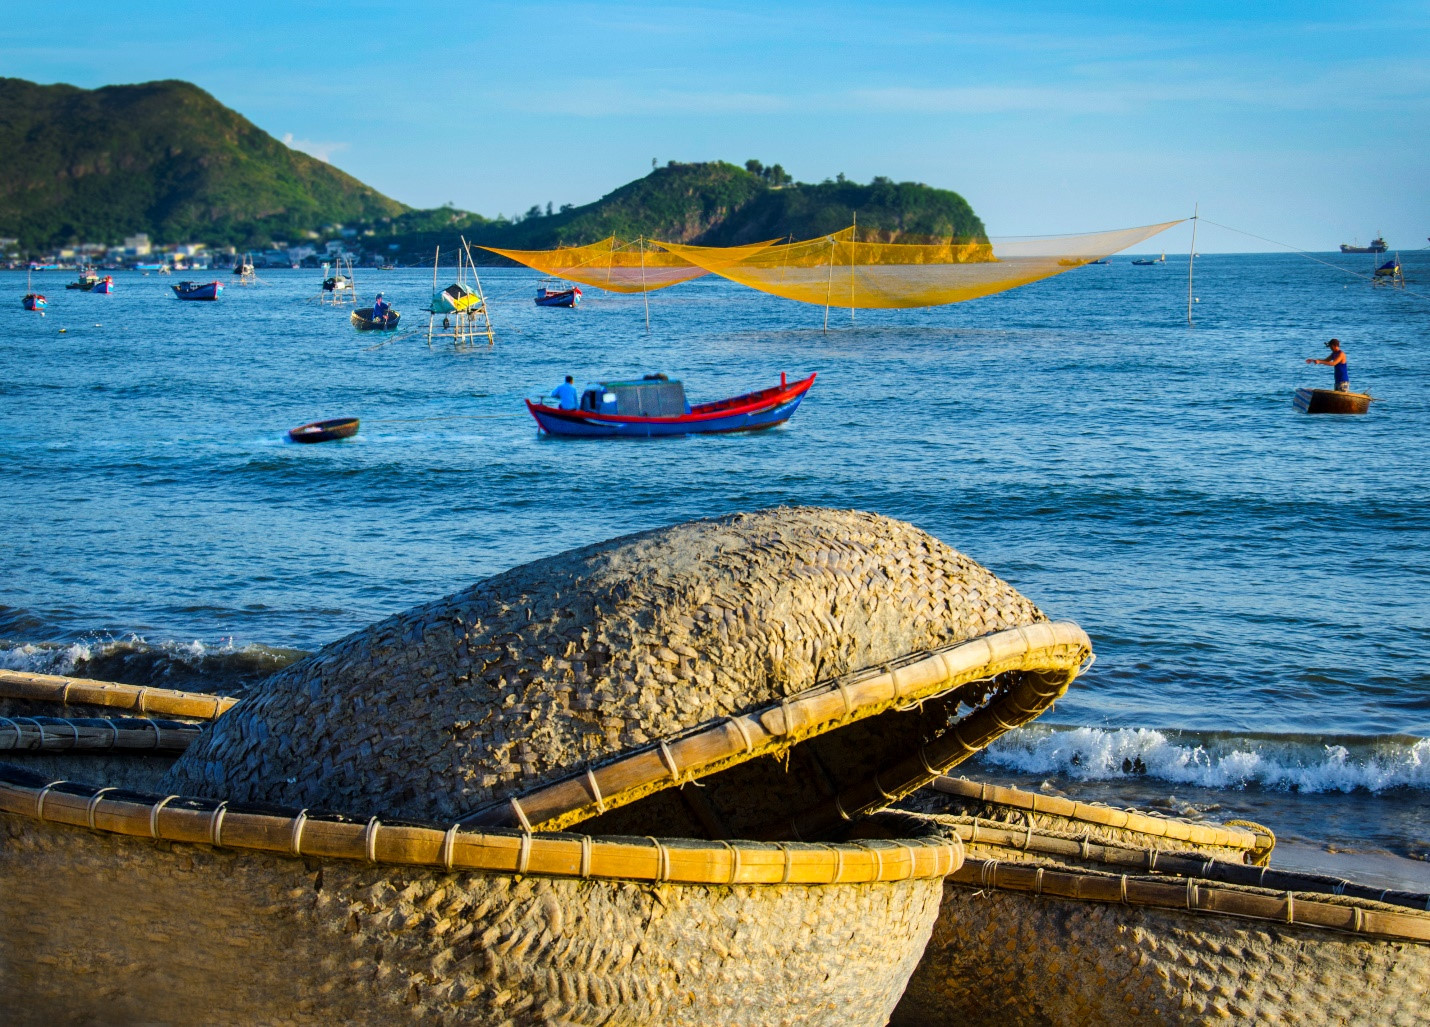 How to get to Quy Nhon